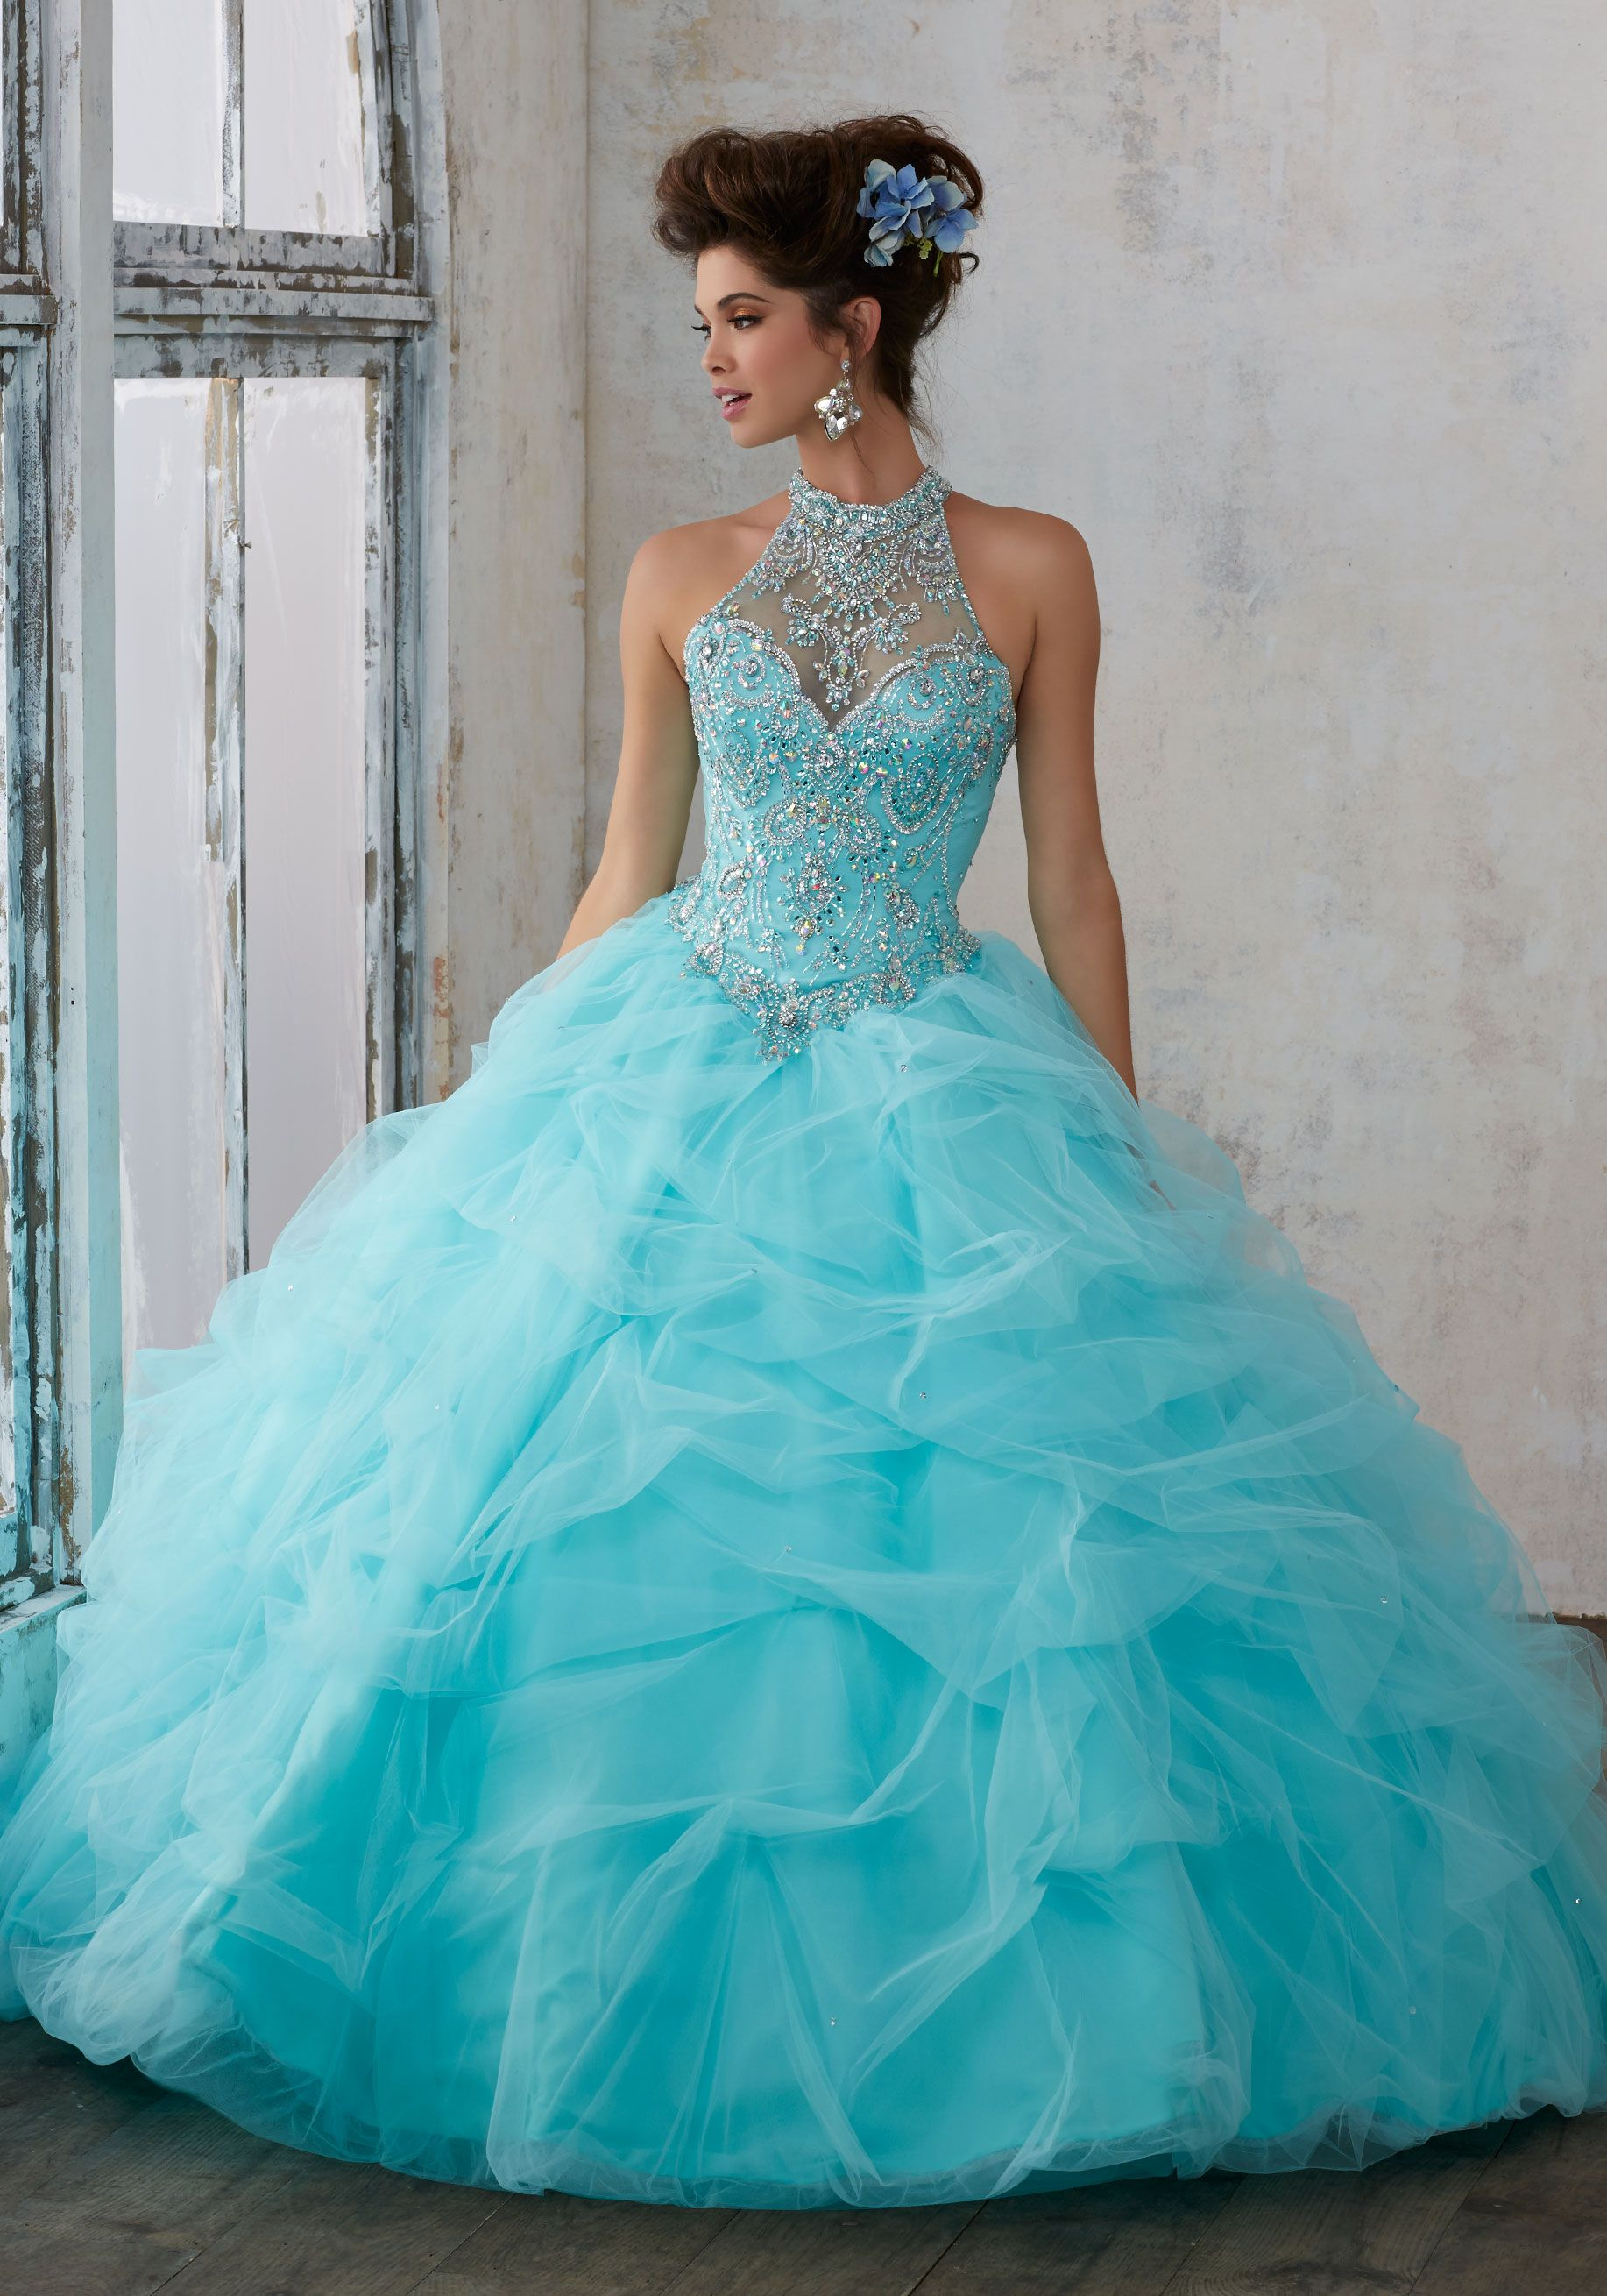 Jeweled beading on a ruched tulle ballgown in dresses